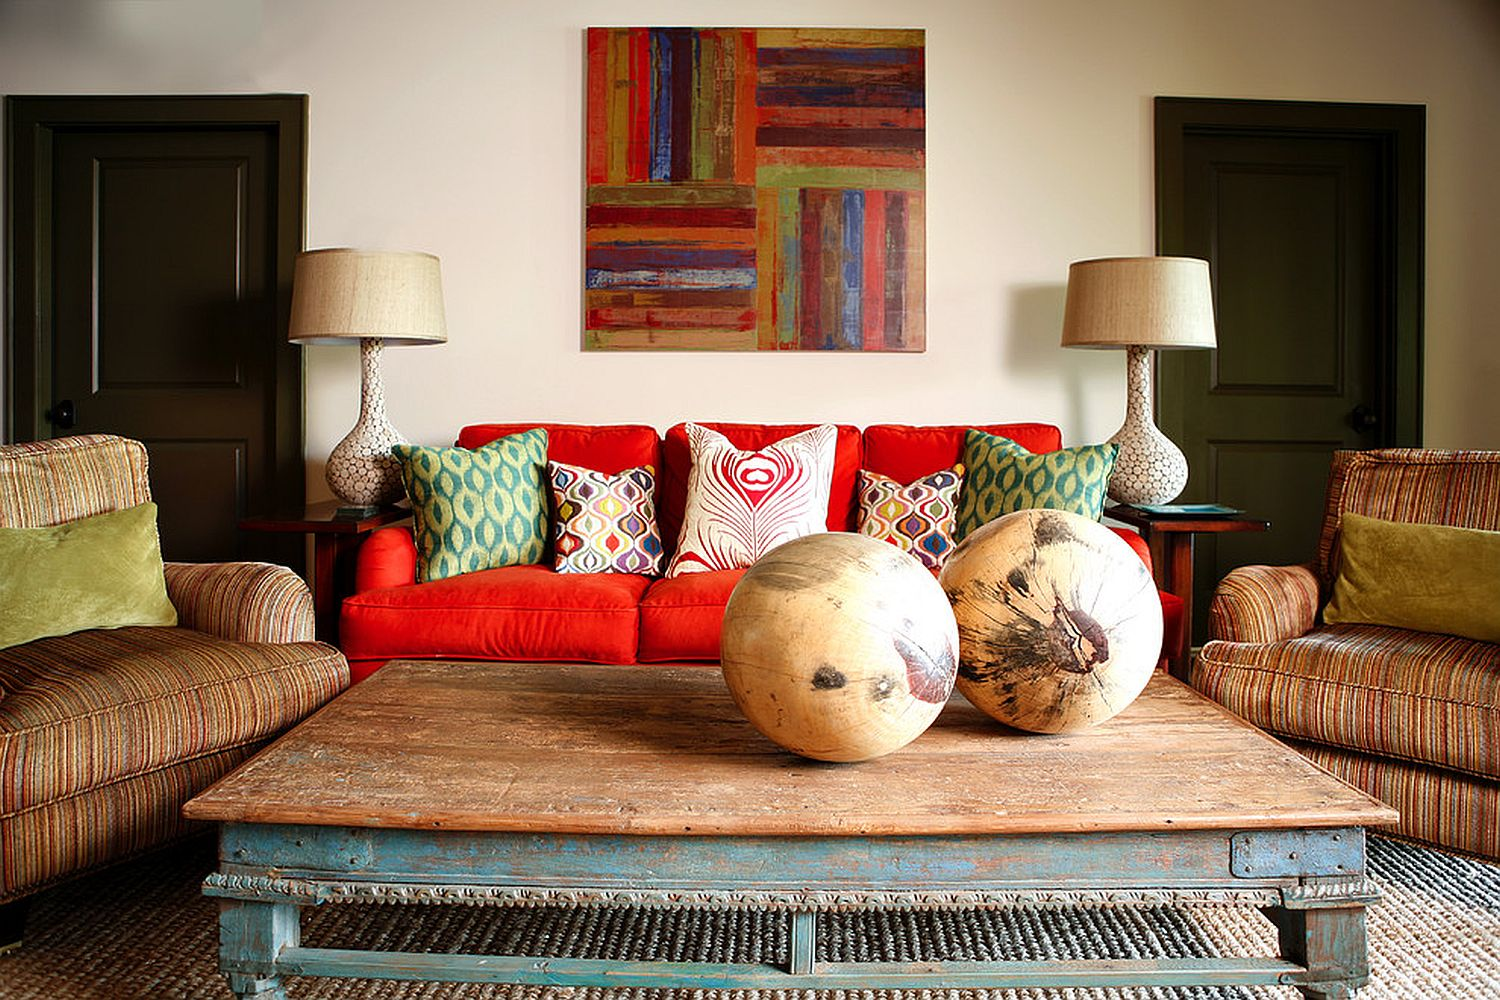 DIY-wall-art-piece-is-an-easy-and-inexpensive-way-to-add-color-to-your-home